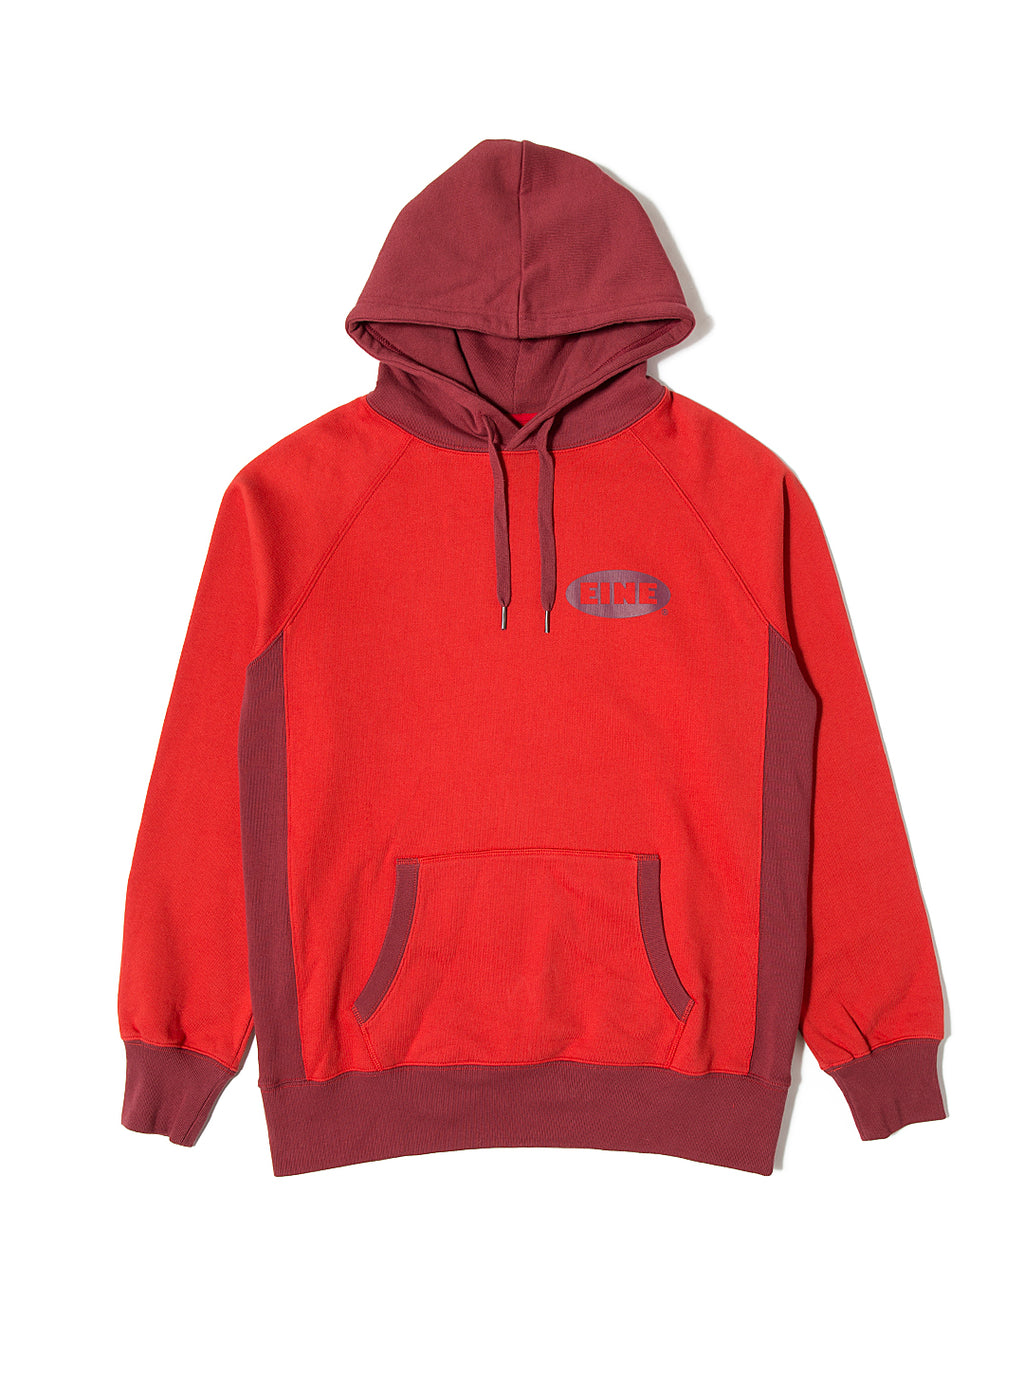 EINE Contrast Hooded Sweat - Red Sample